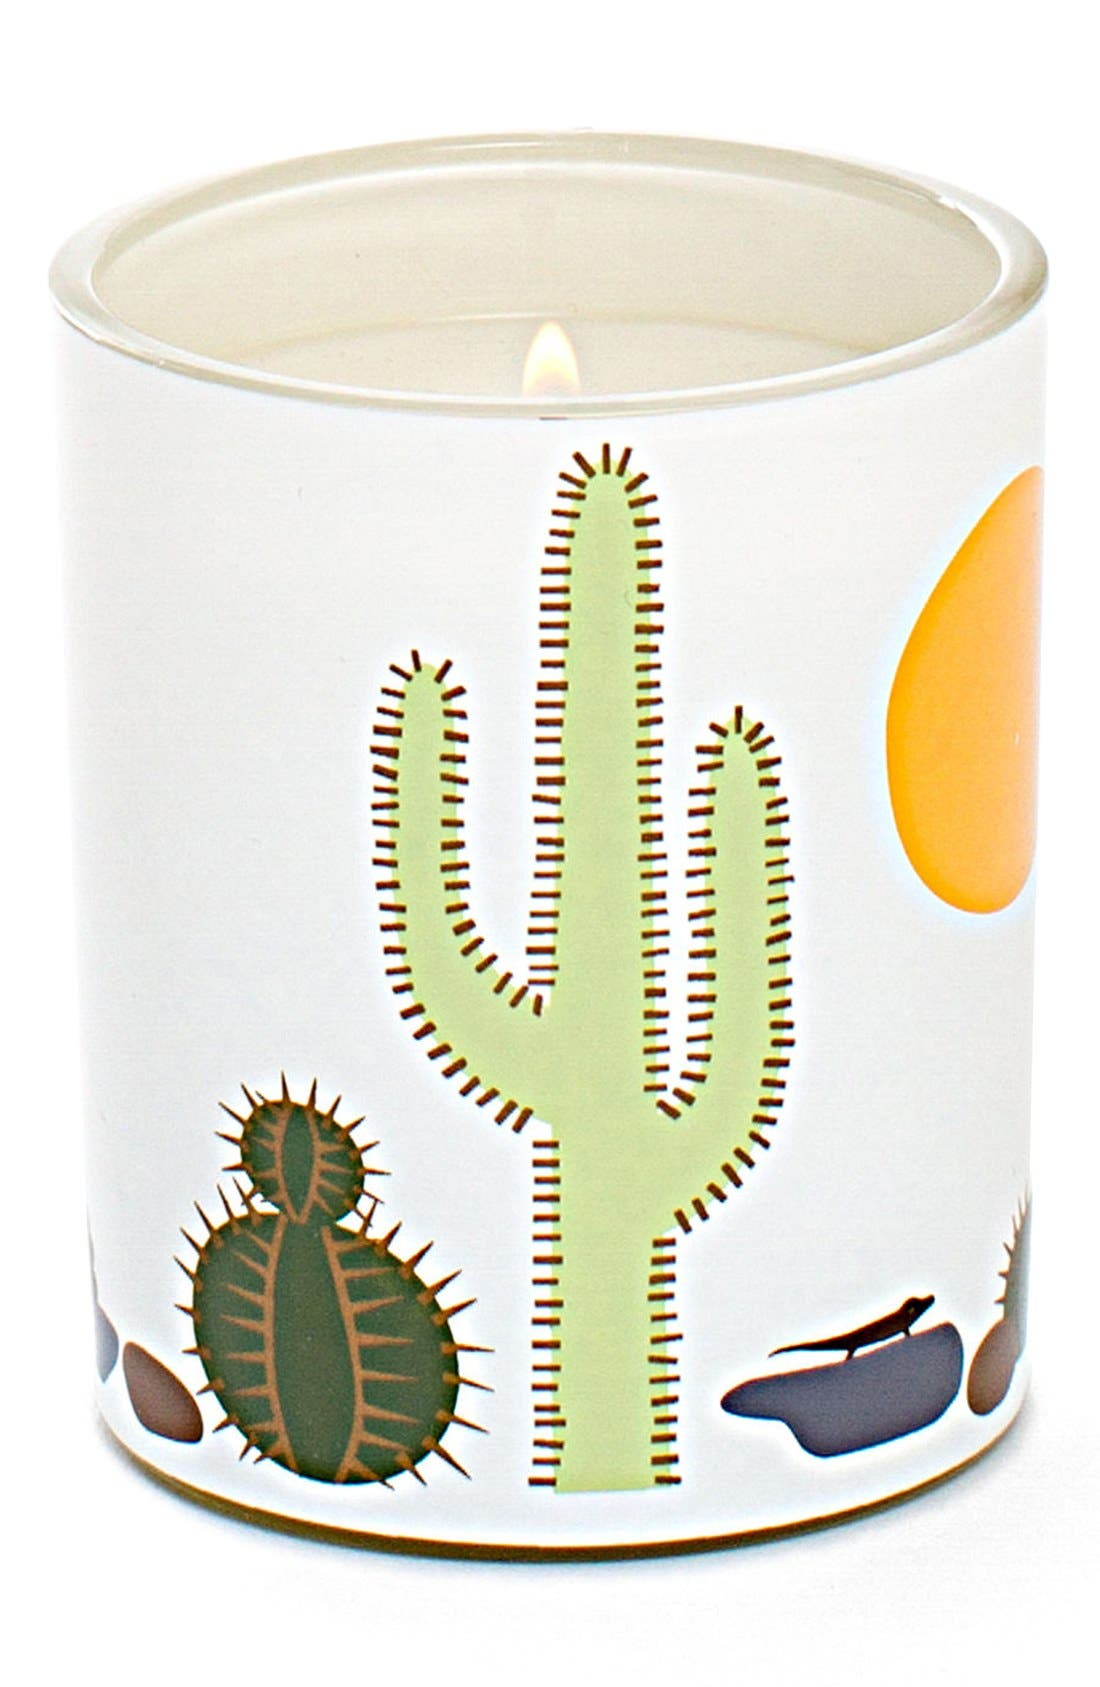 'Spirit' Scented Candle,                             Main thumbnail 1, color,                             No Color